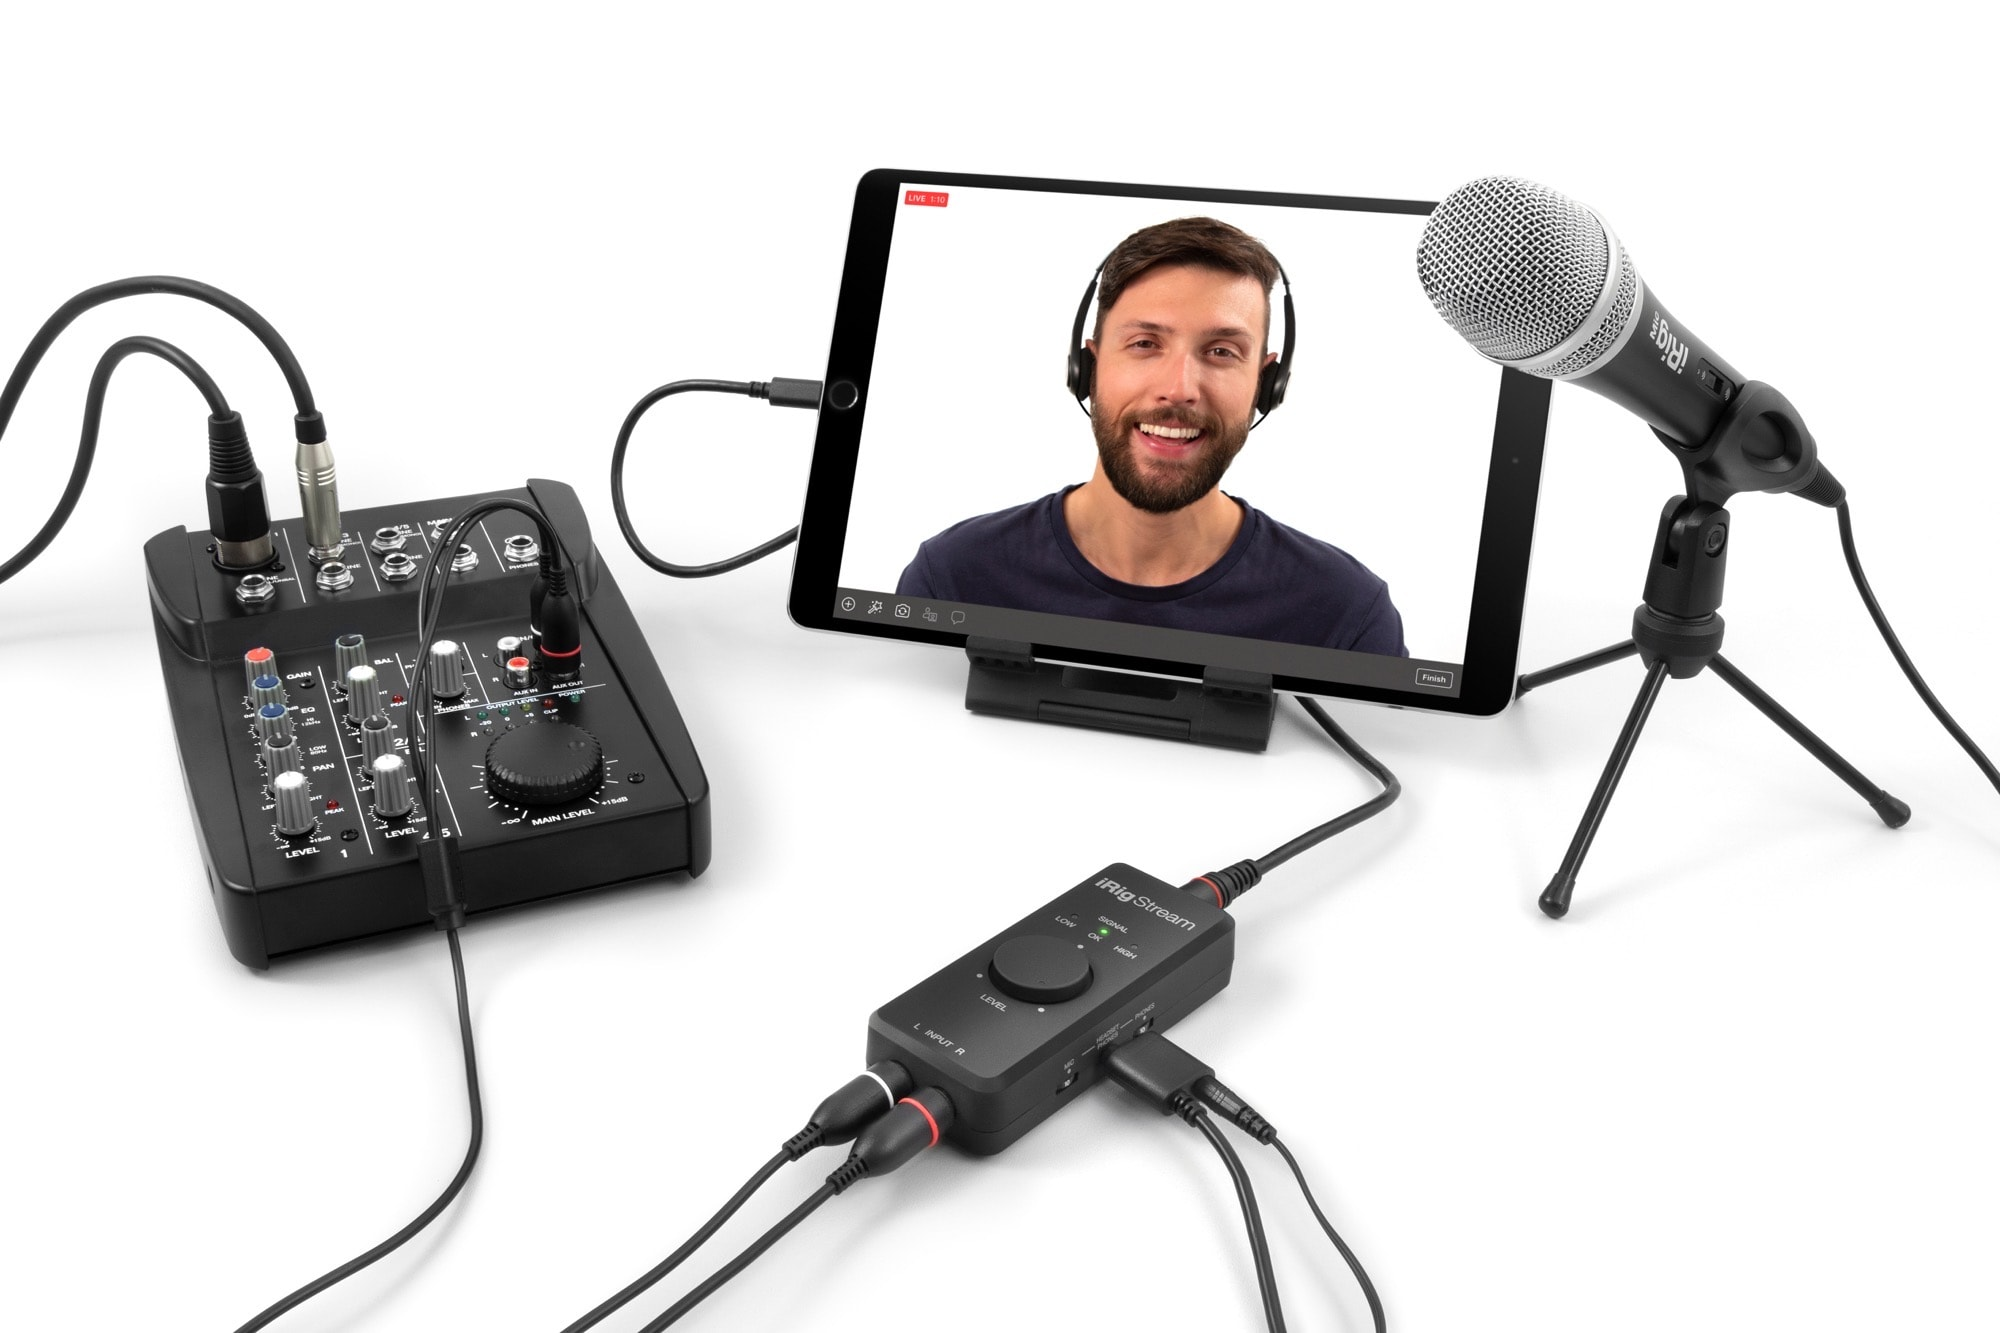 IRig stream podcasting setup